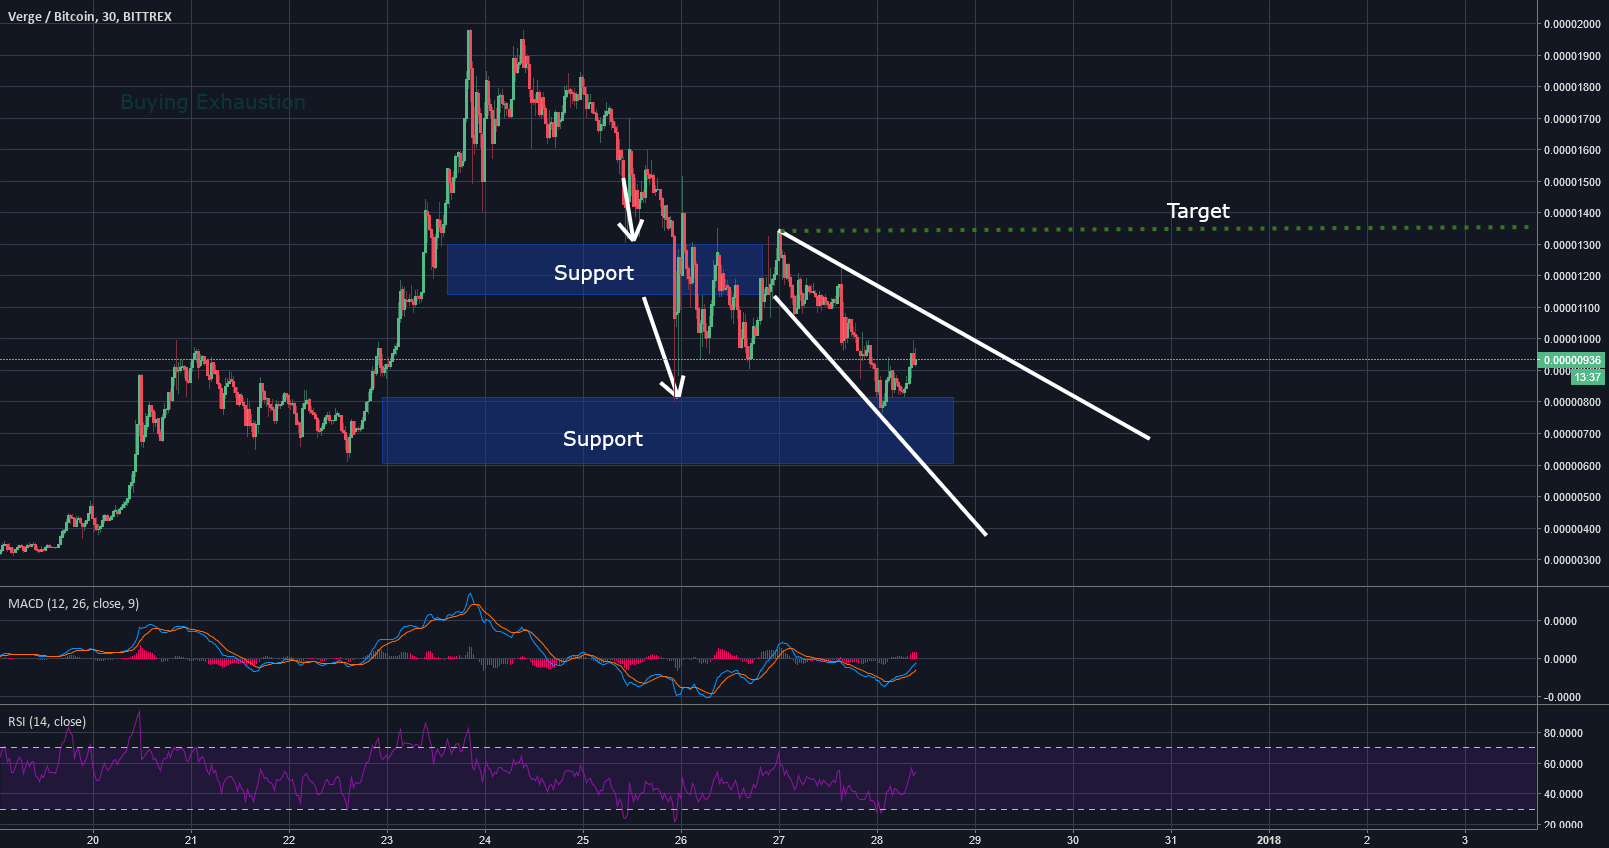 XVG - Verge possible Descending Broadening Wedge